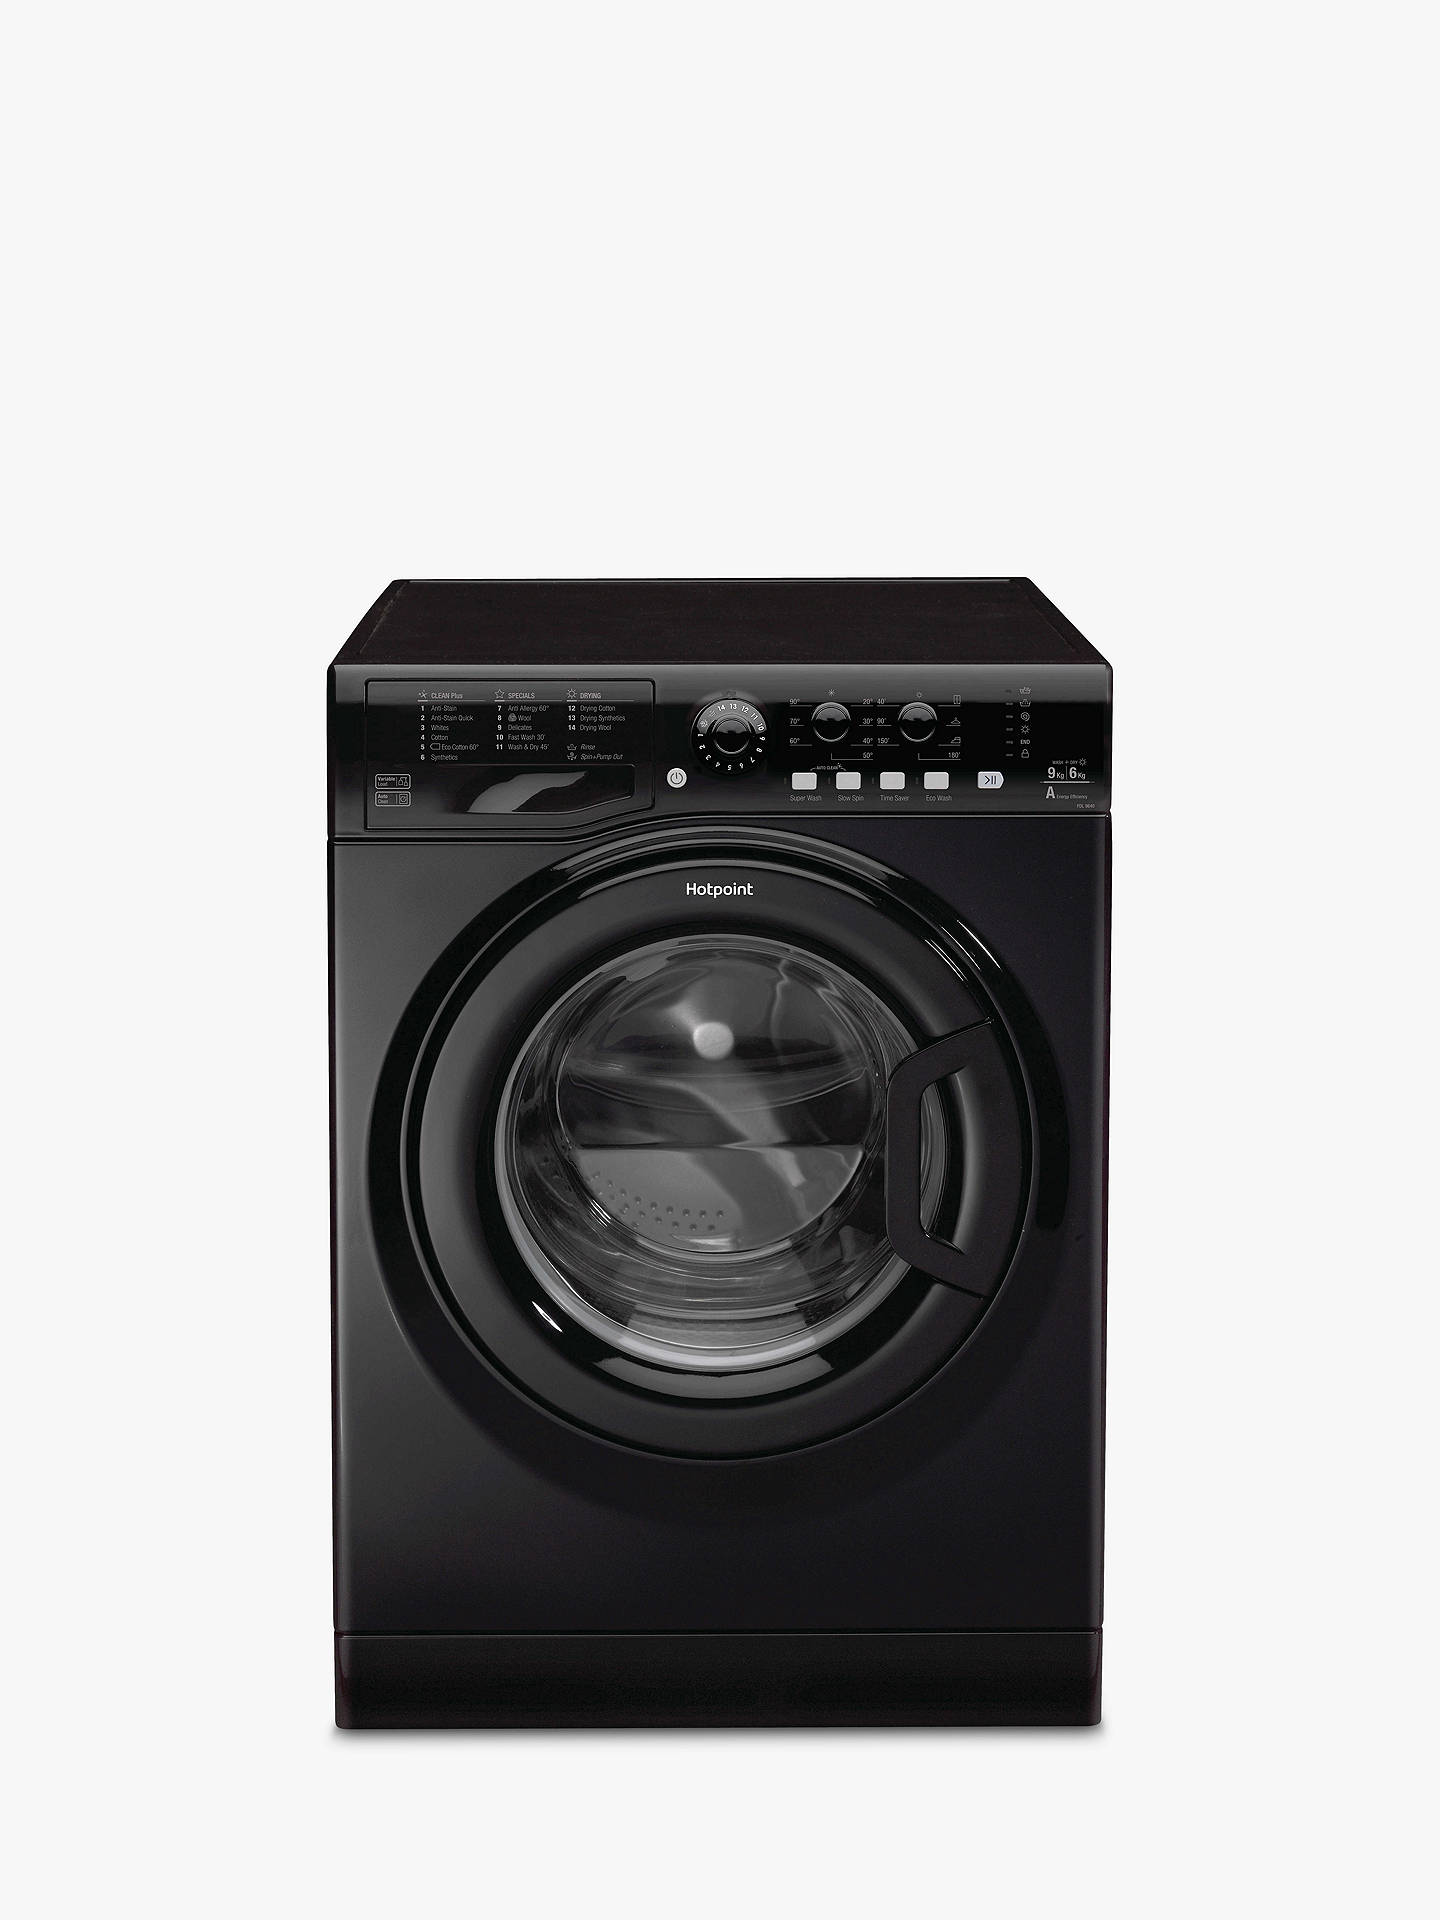 Hotpoint FDL9640KUK Aquarius Washer Dryer, 9kg Wash/6kg Dry Load, A Energy Rating, 1400rpm Spin, Matte Black